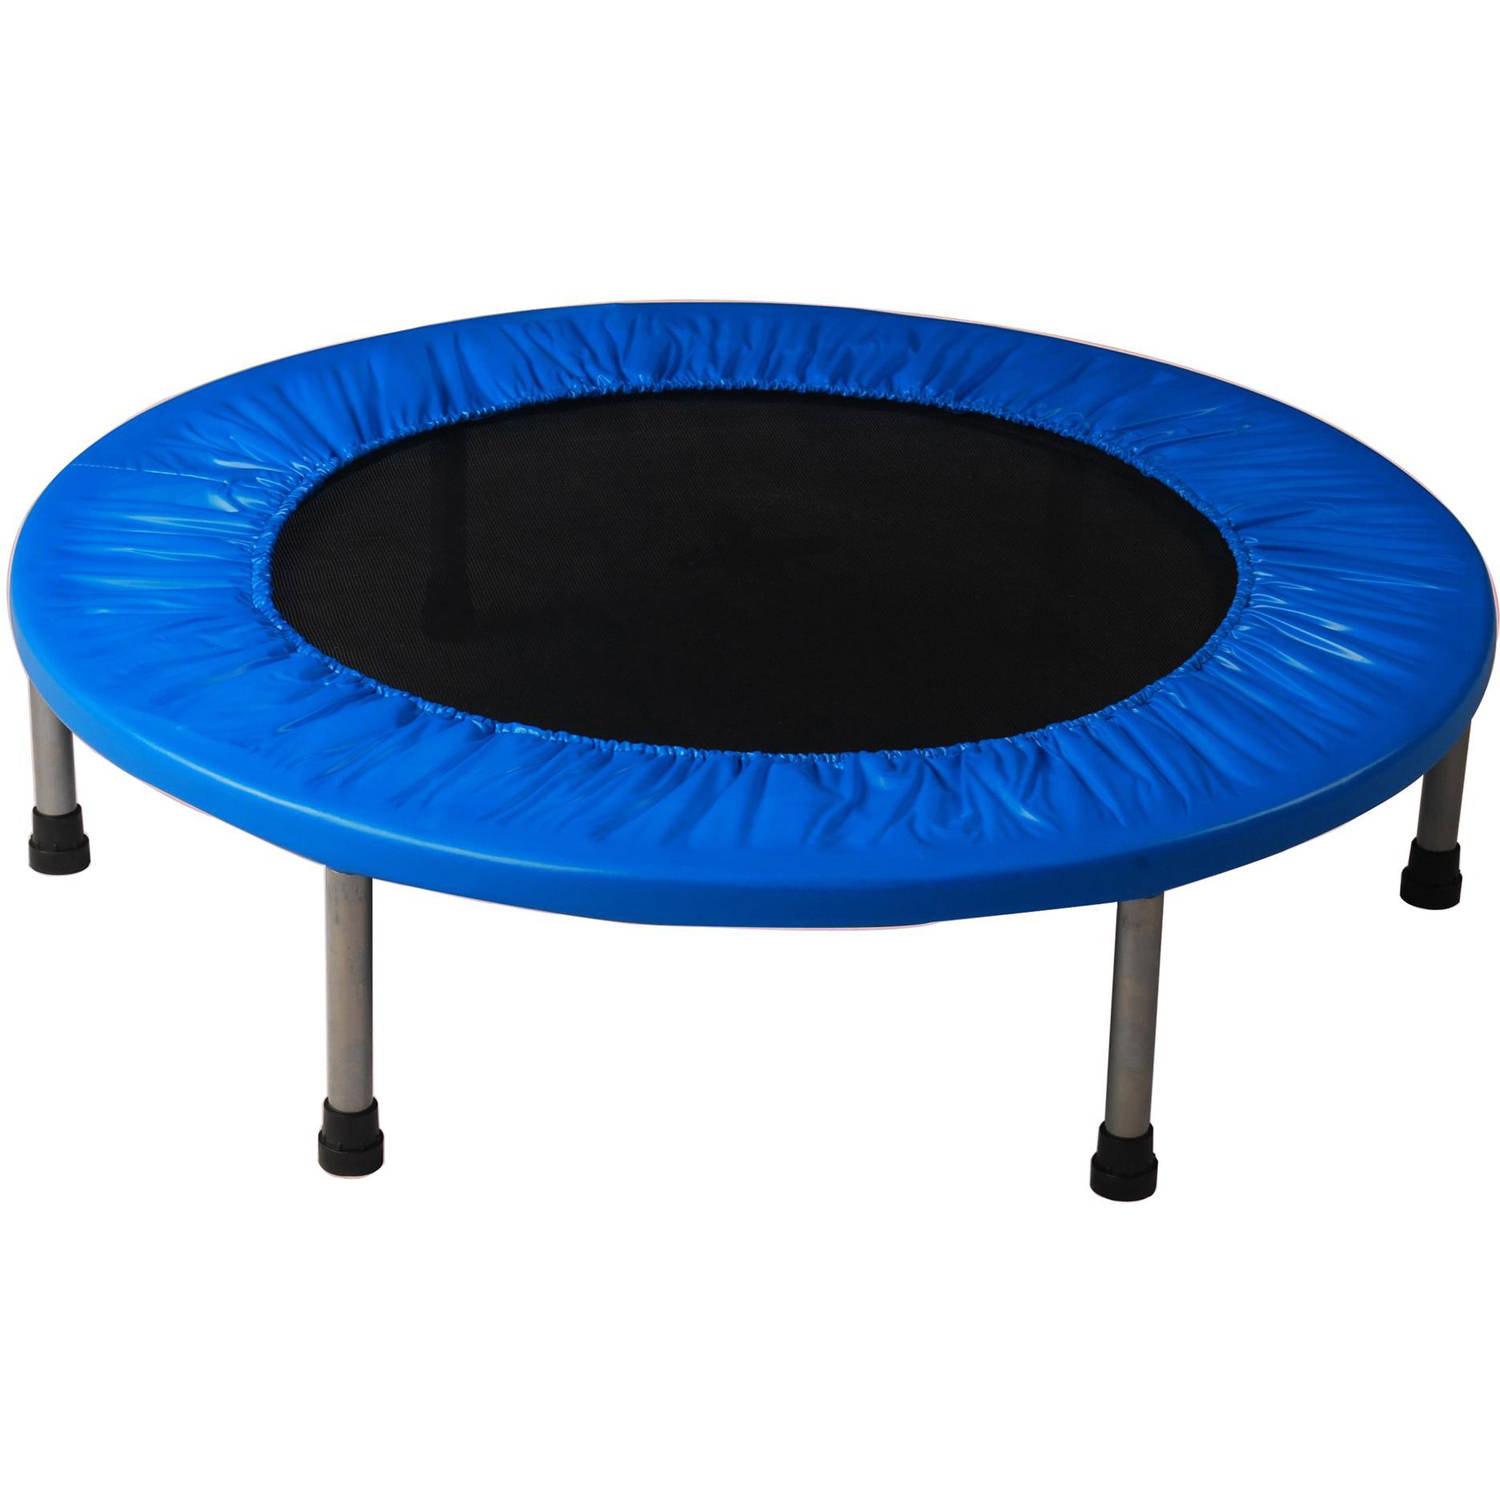 "Image of Airzone 48"" Fitness Trampoline, Blue"